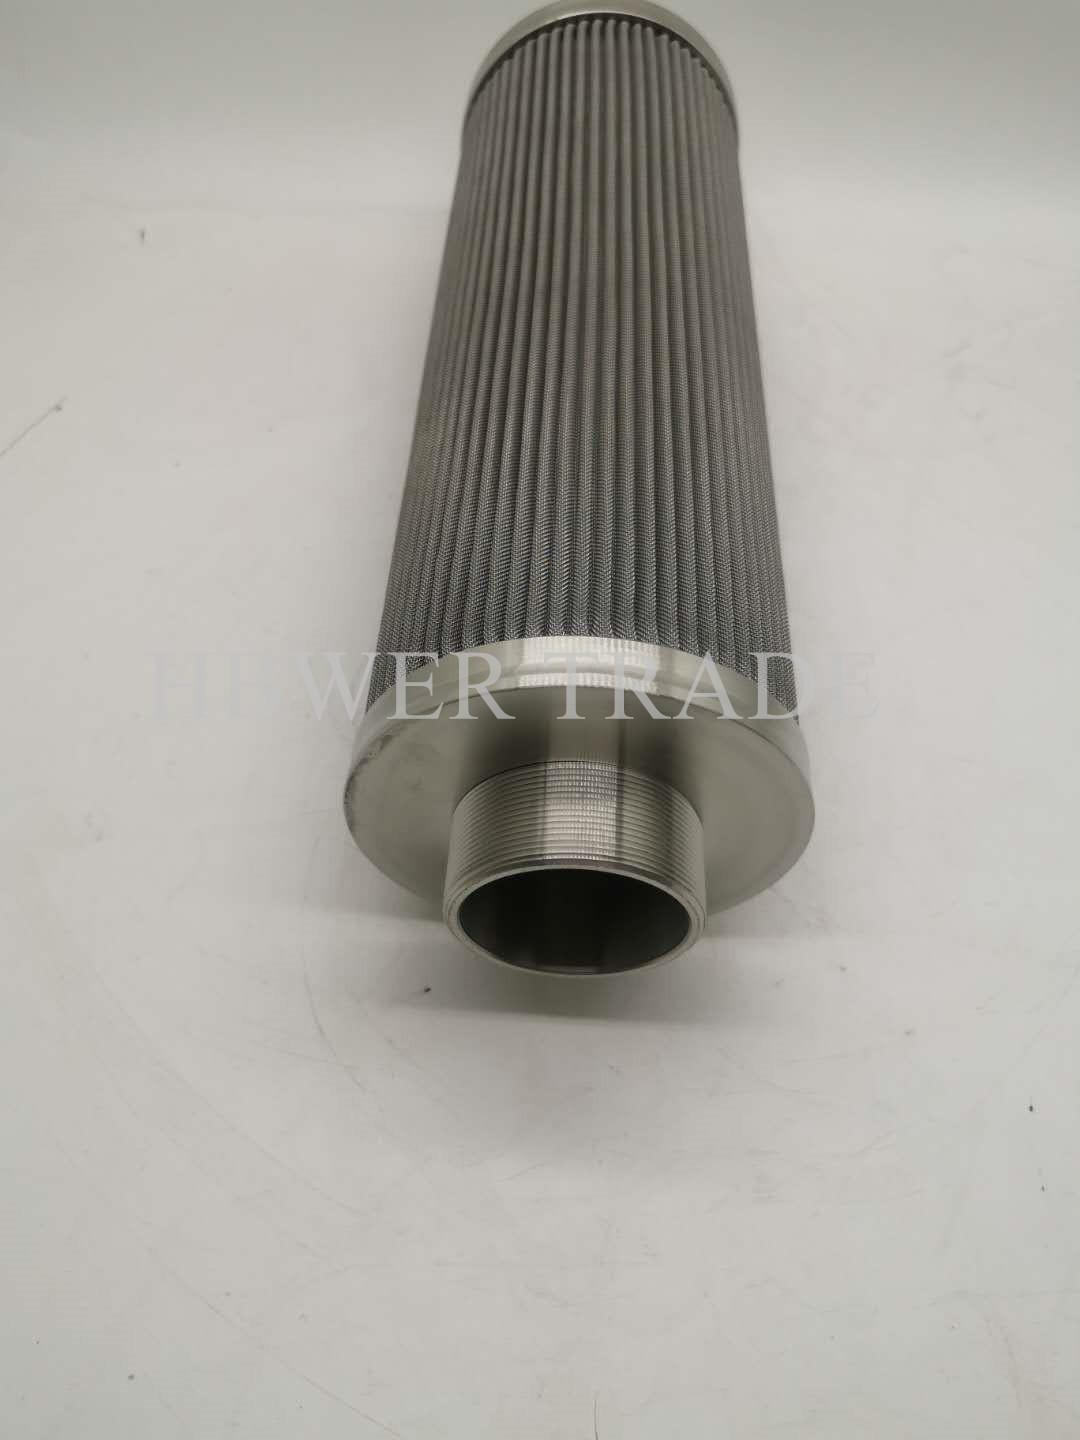 External threaded stainless steel filter element 316 304 material stainless stee 3